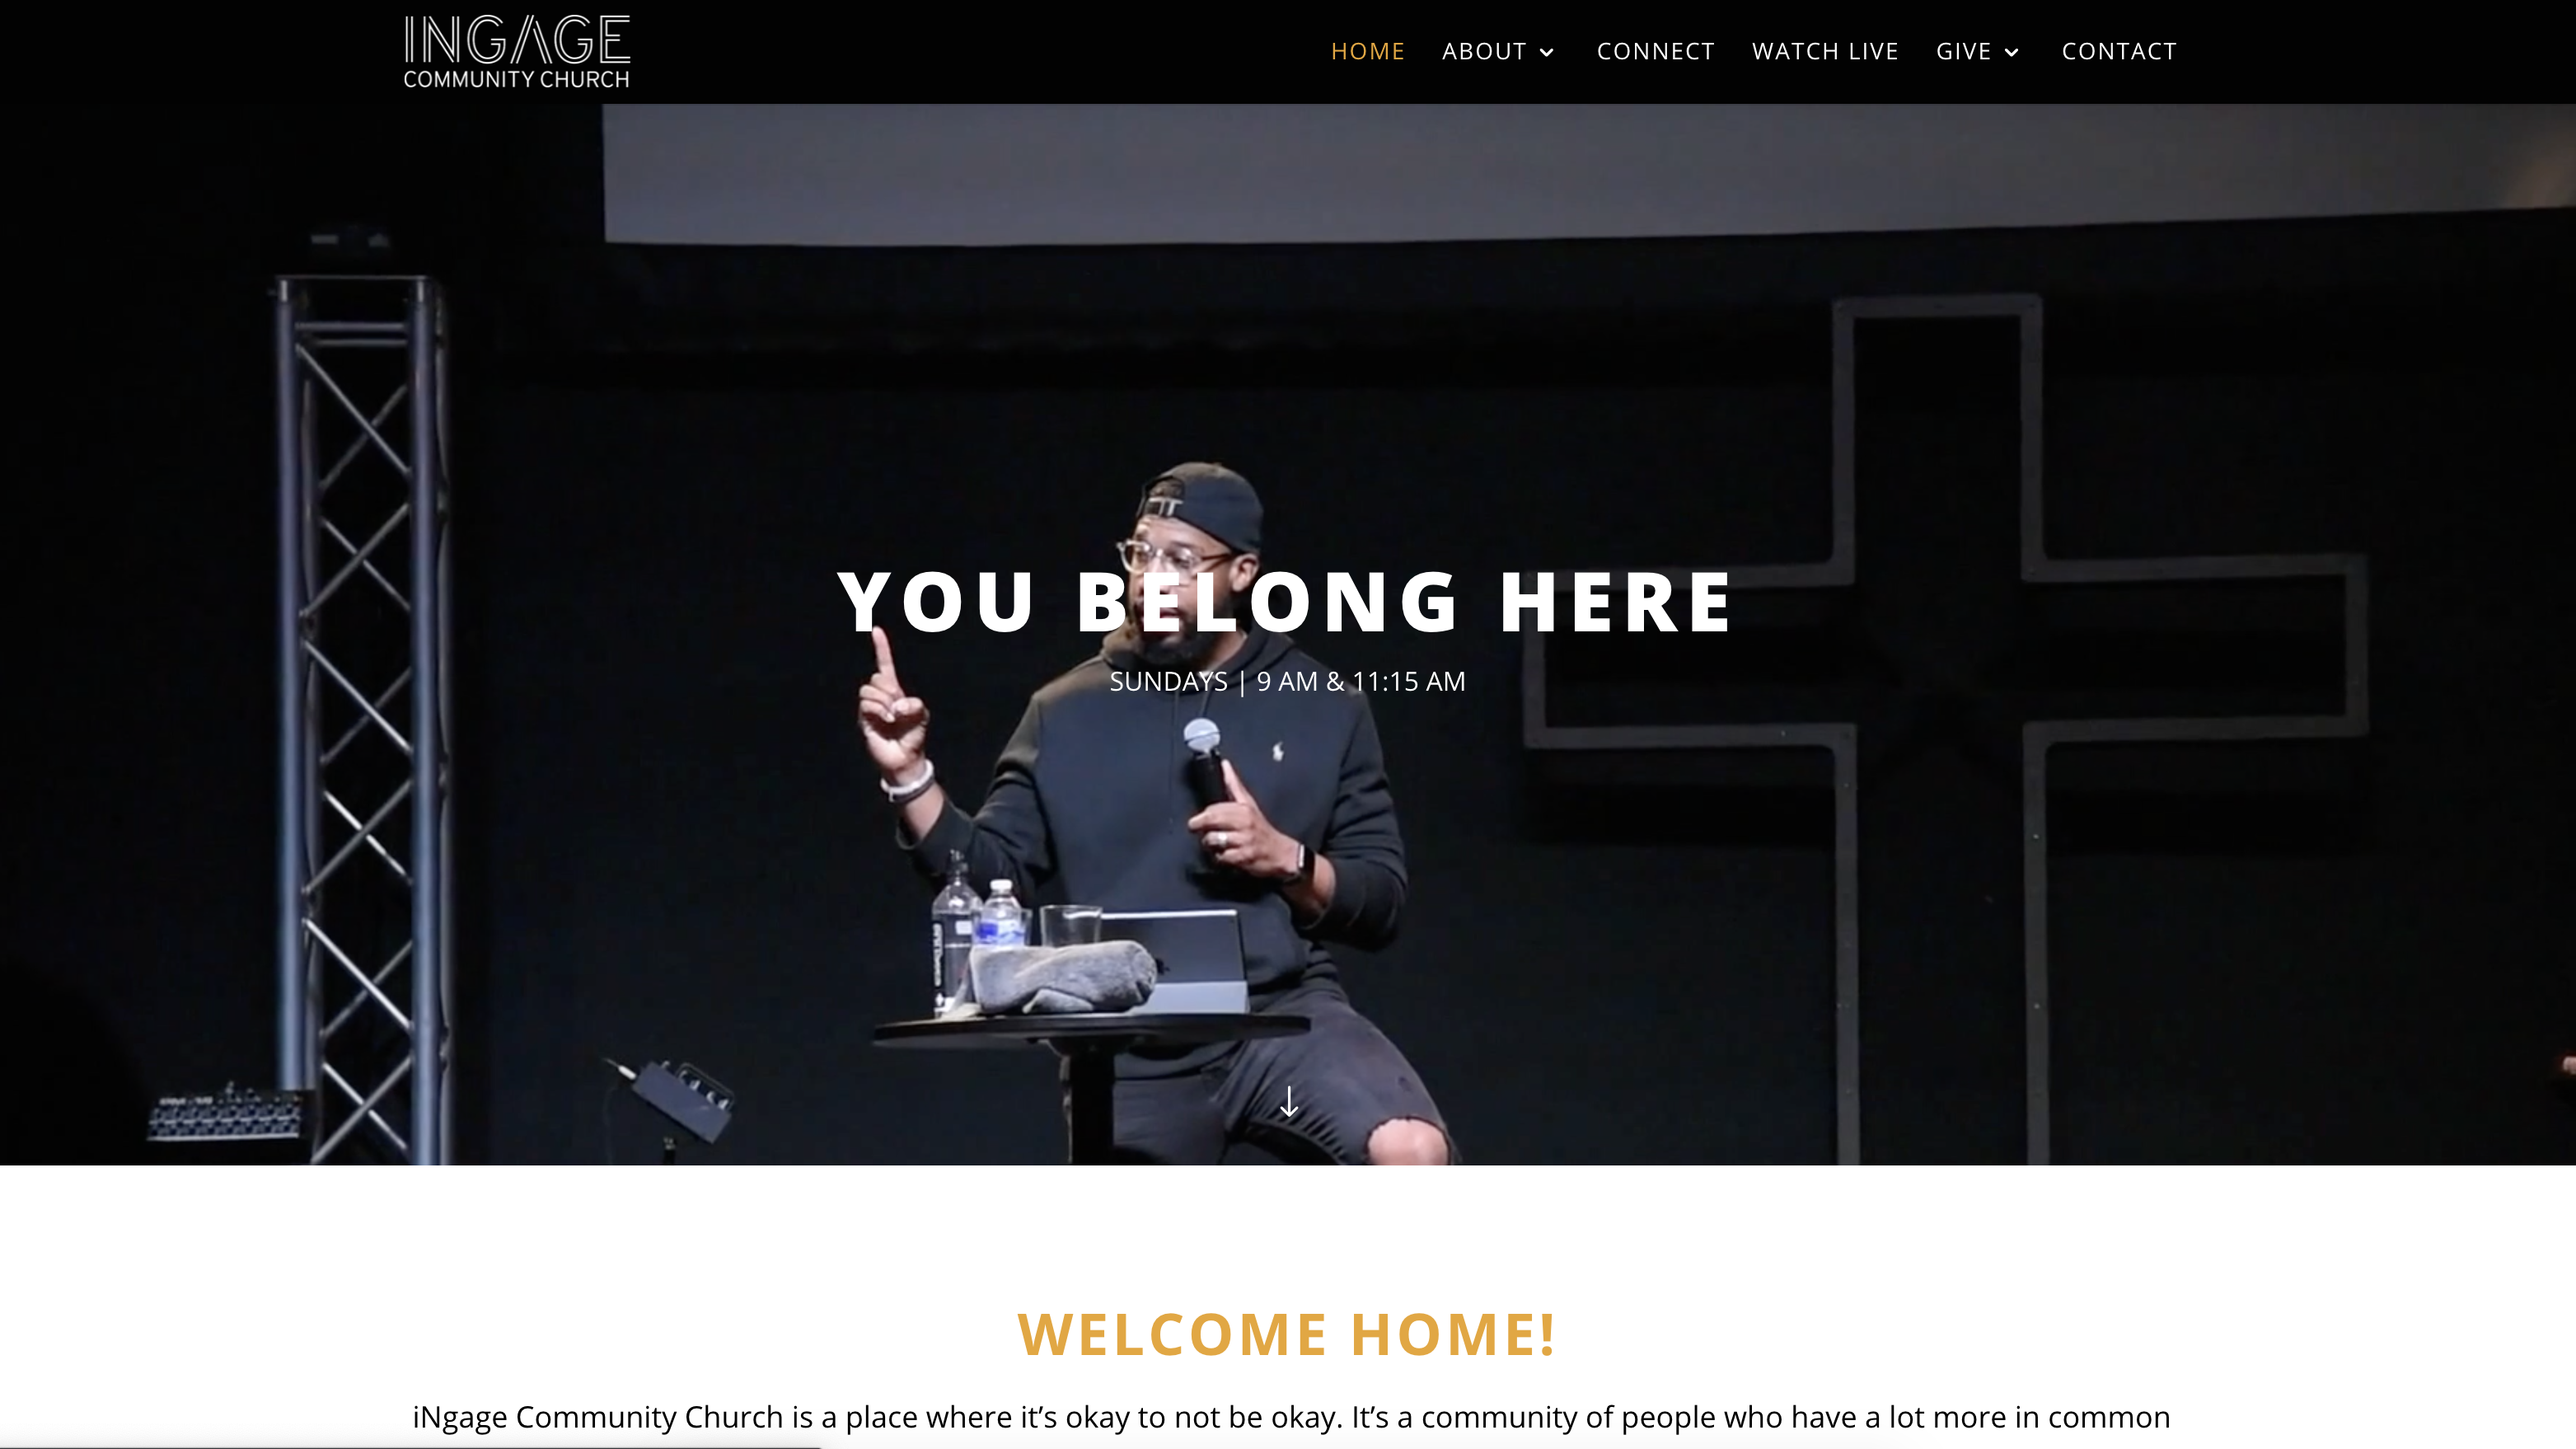 ingage community church web design